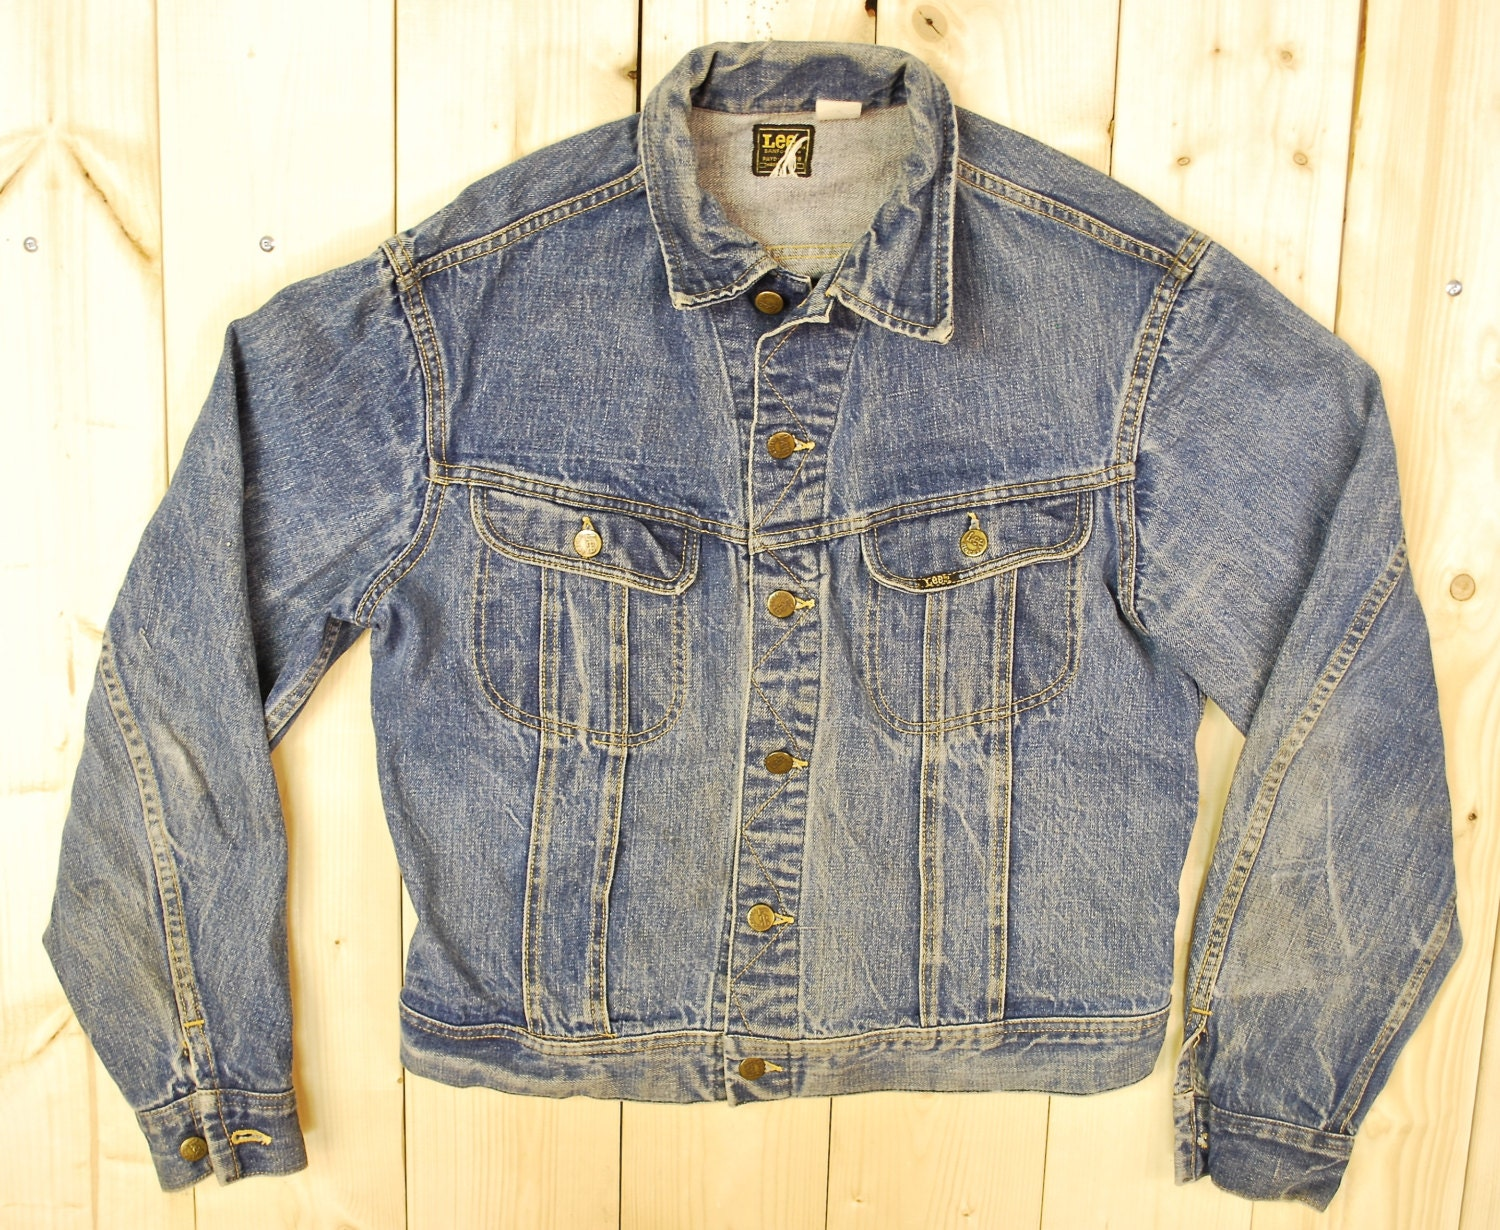 Vintage Research Resources Vintage City Clothing